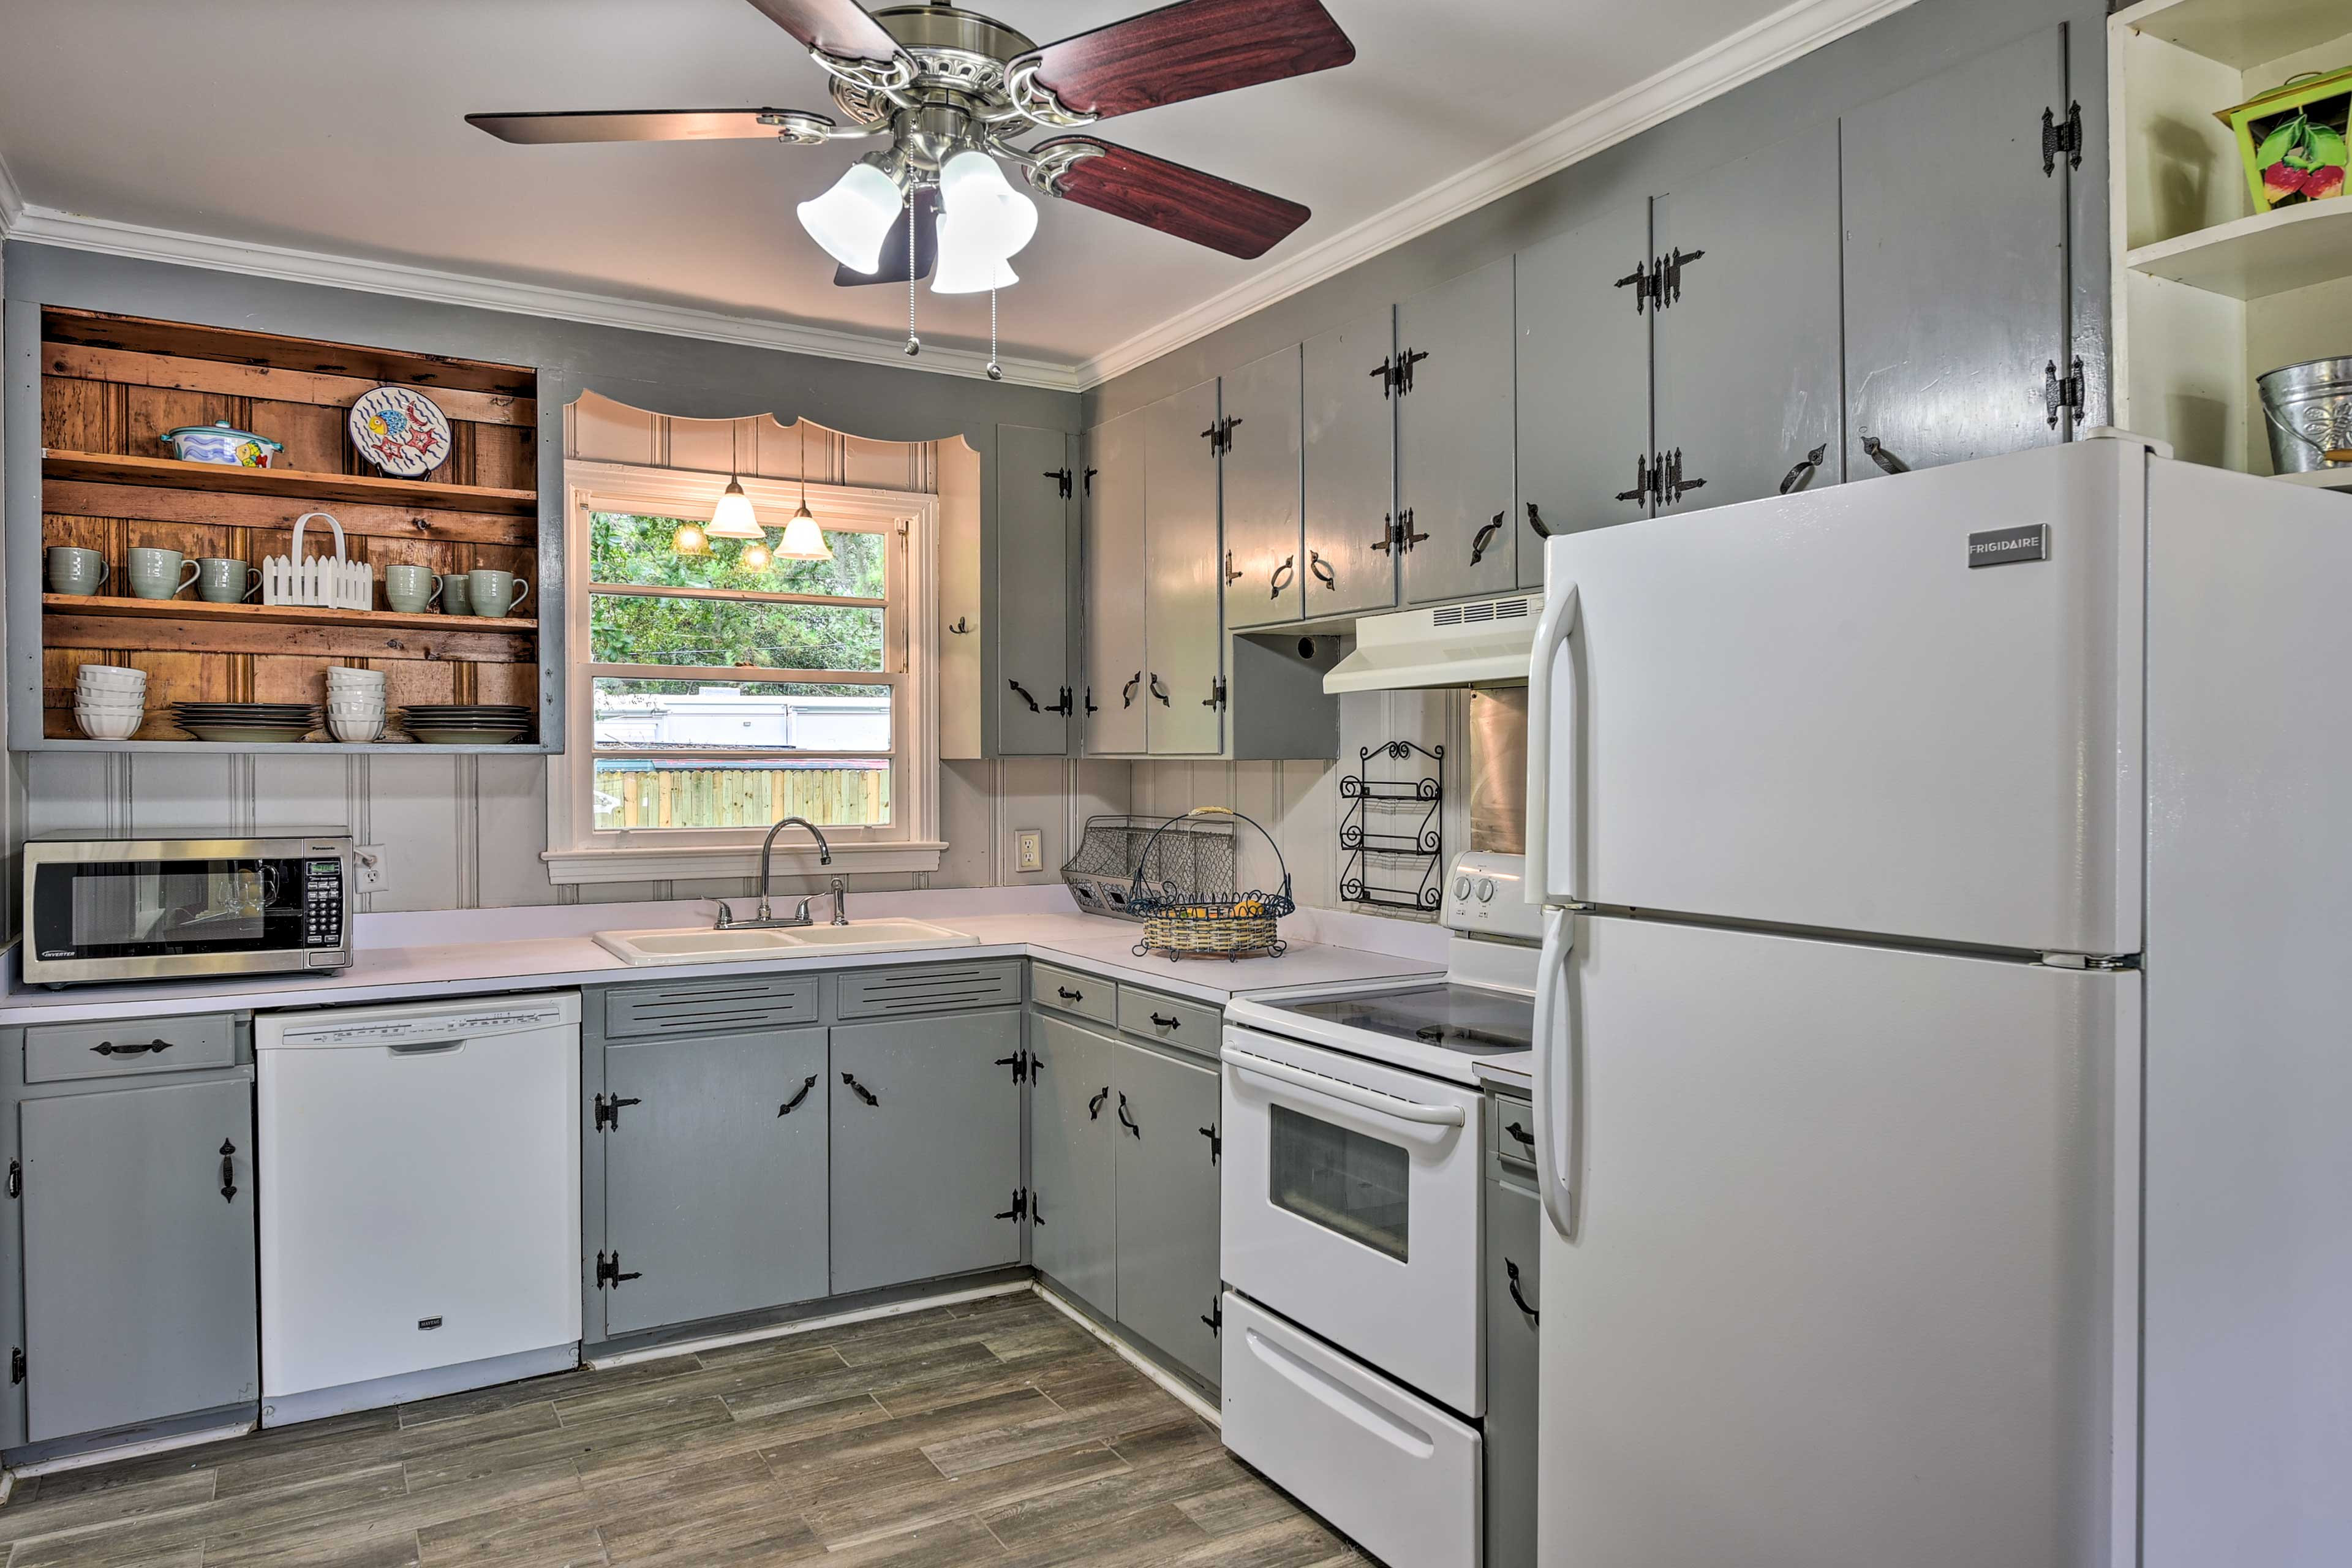 With an open kitchen, there's room for multiple chefs.